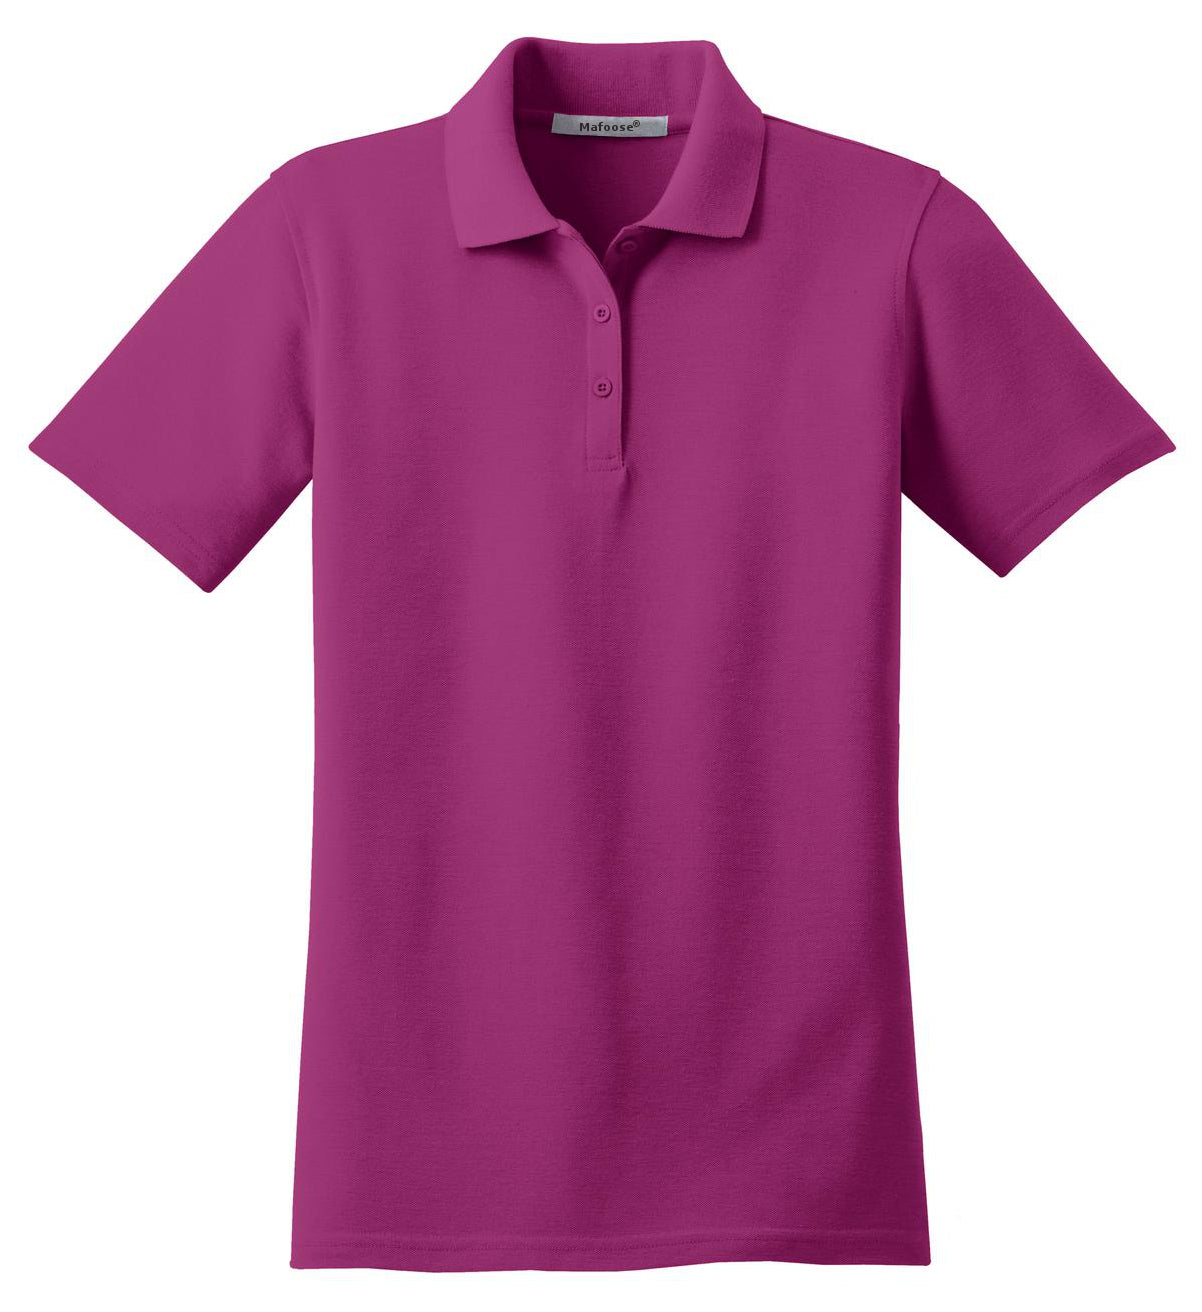 Mafoose Women's Stain Resistant Polo Shirt Boysenberry Pink-Front